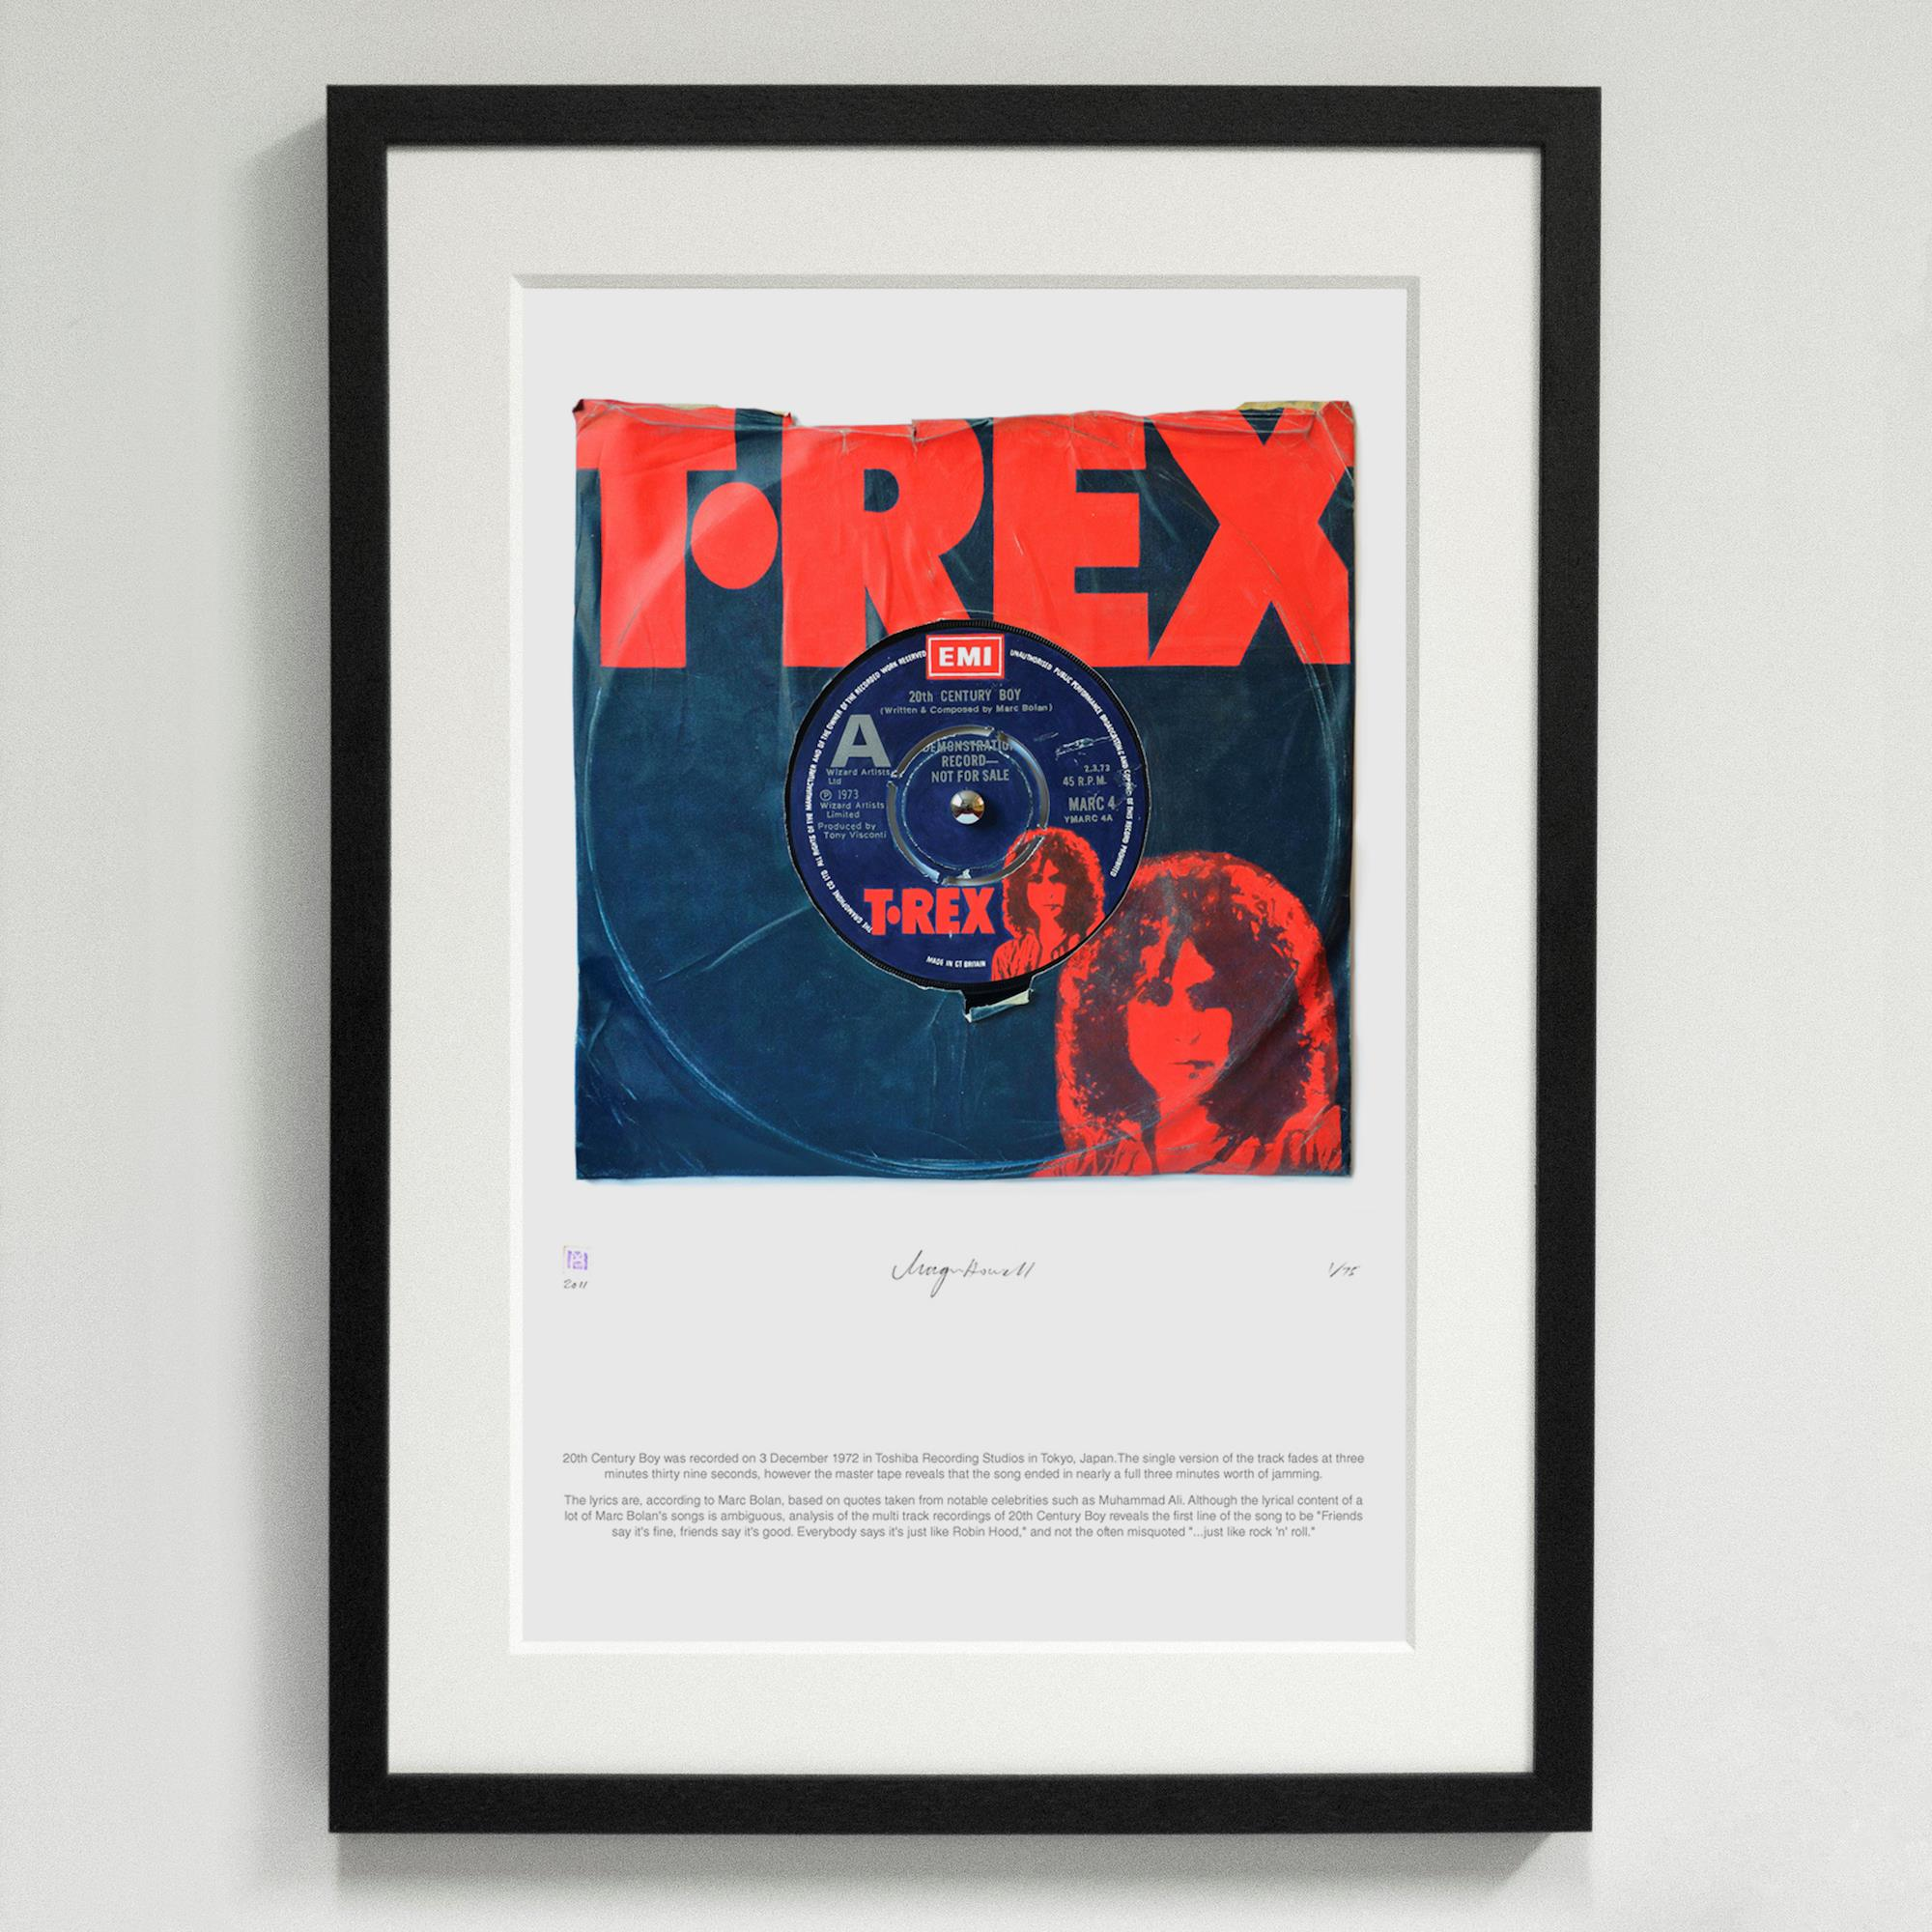 '20th Century Boy' T-Rex - Morgan Howell Print